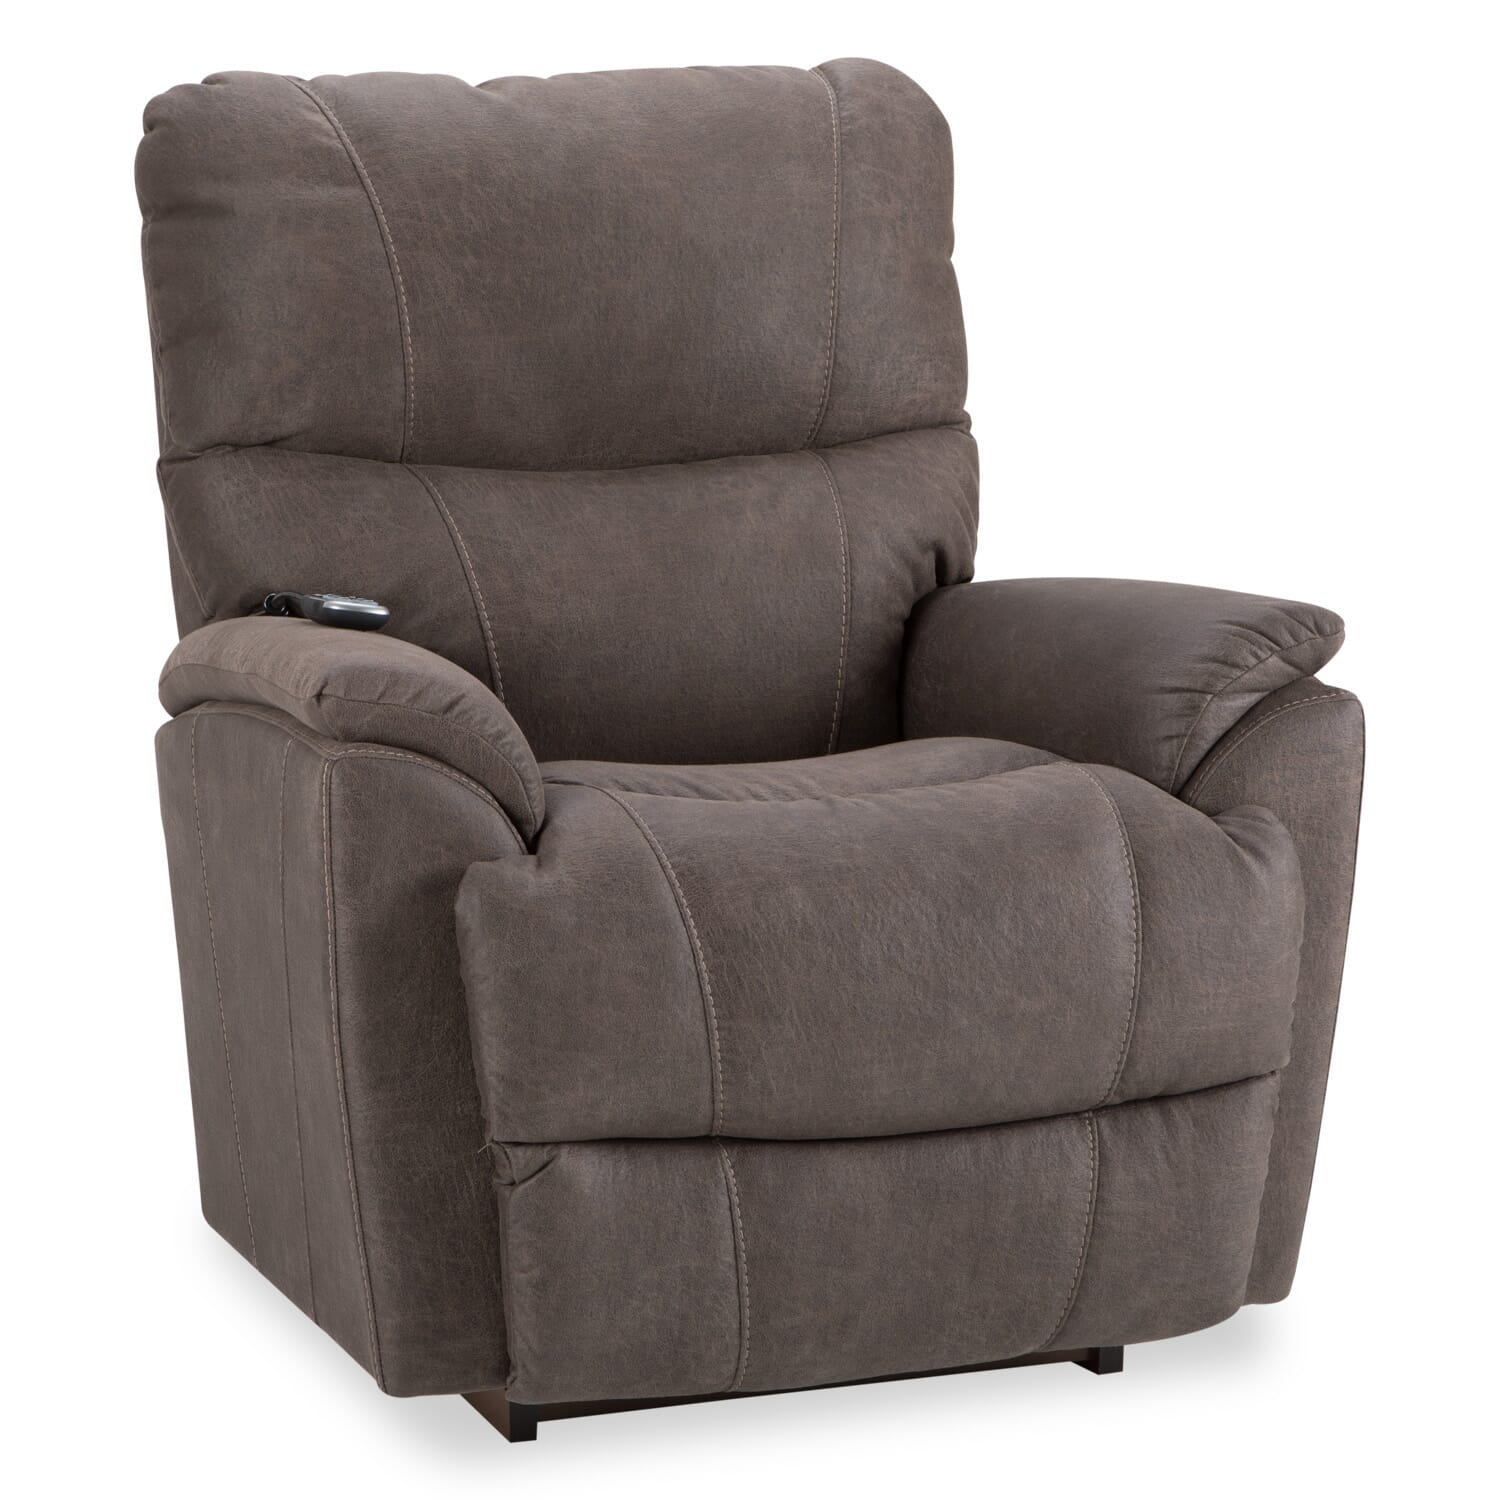 North Power Rocker Recliner Recliners Wg Amp R Furniture